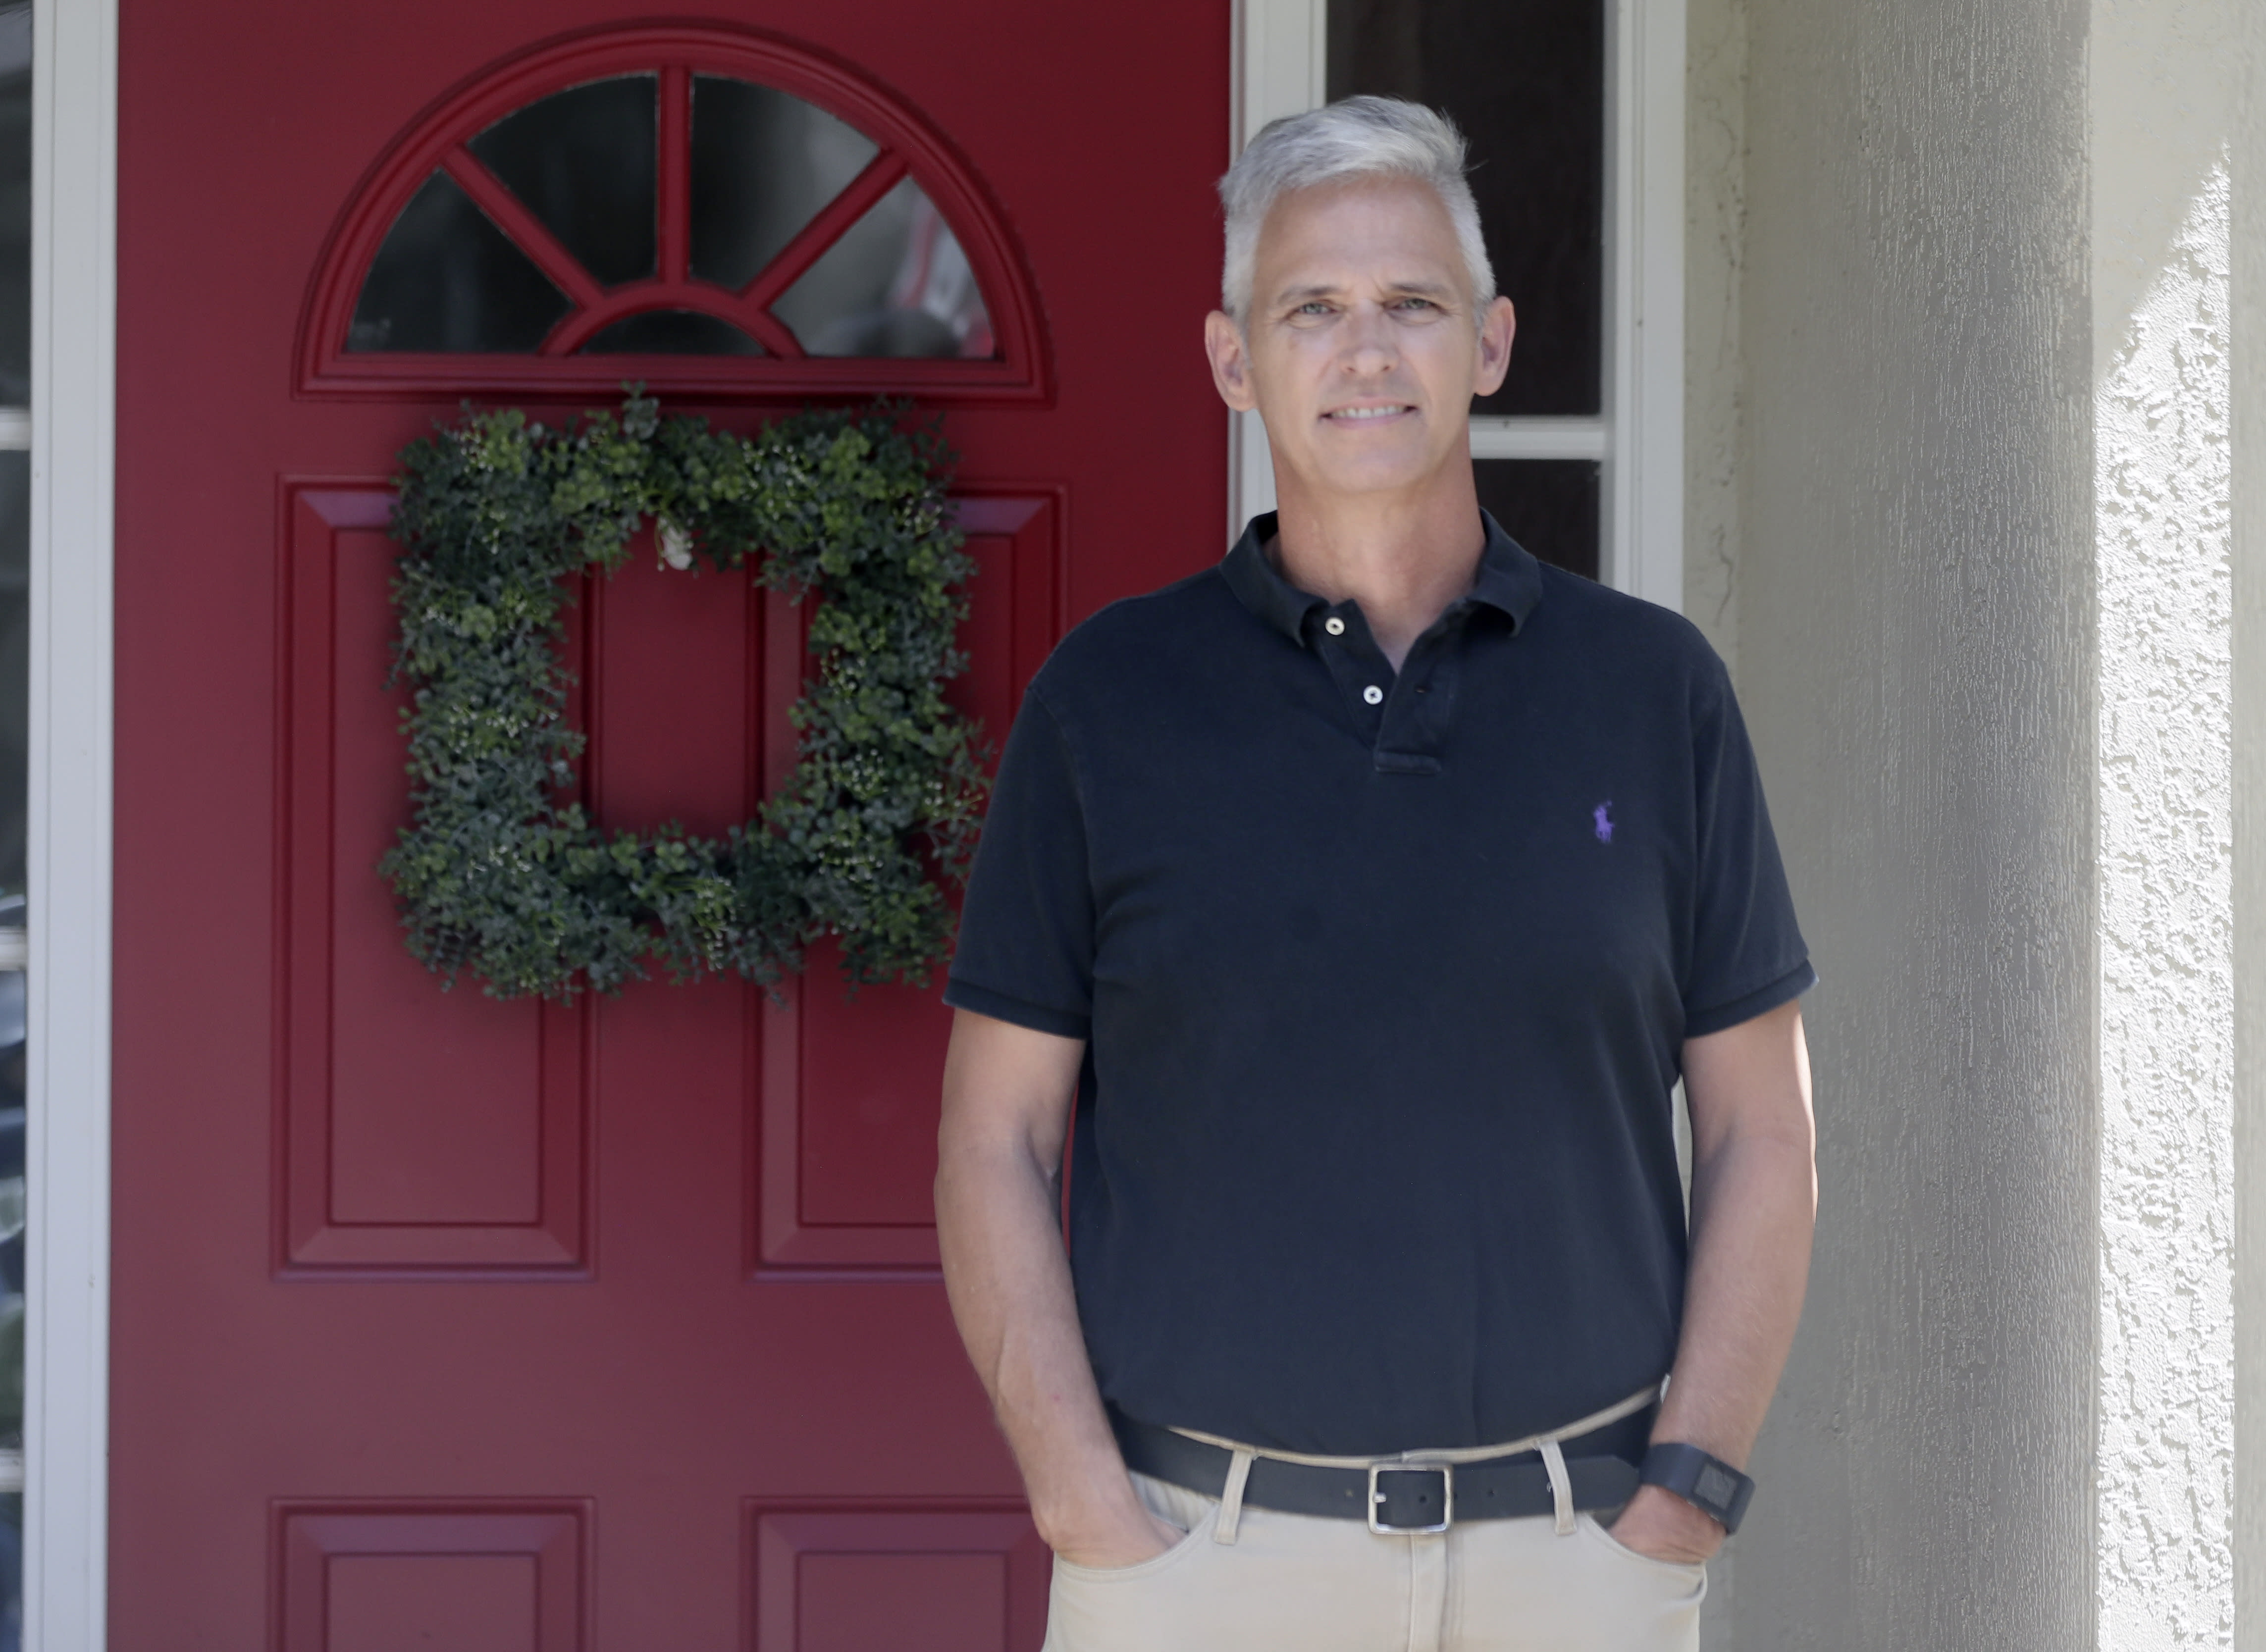 Bob Garick stands by the entrance to his home Wednesday, Aug. 5, 2020, in Oviedo, Fla. Garick was looking forward to being a field supervisor during the door-knocking phase of the 2020 census, but as the number of new coronavirus cases in Florida shot up last month, he changed his mind and decided not to take the job. The loss of these so-called door-knockers - formally known as enumerators - is happening just when the agency faces newly tightened deadlines to reach the hardest to count communities, including minorities and immigrants. (AP Photo/John Raoux)